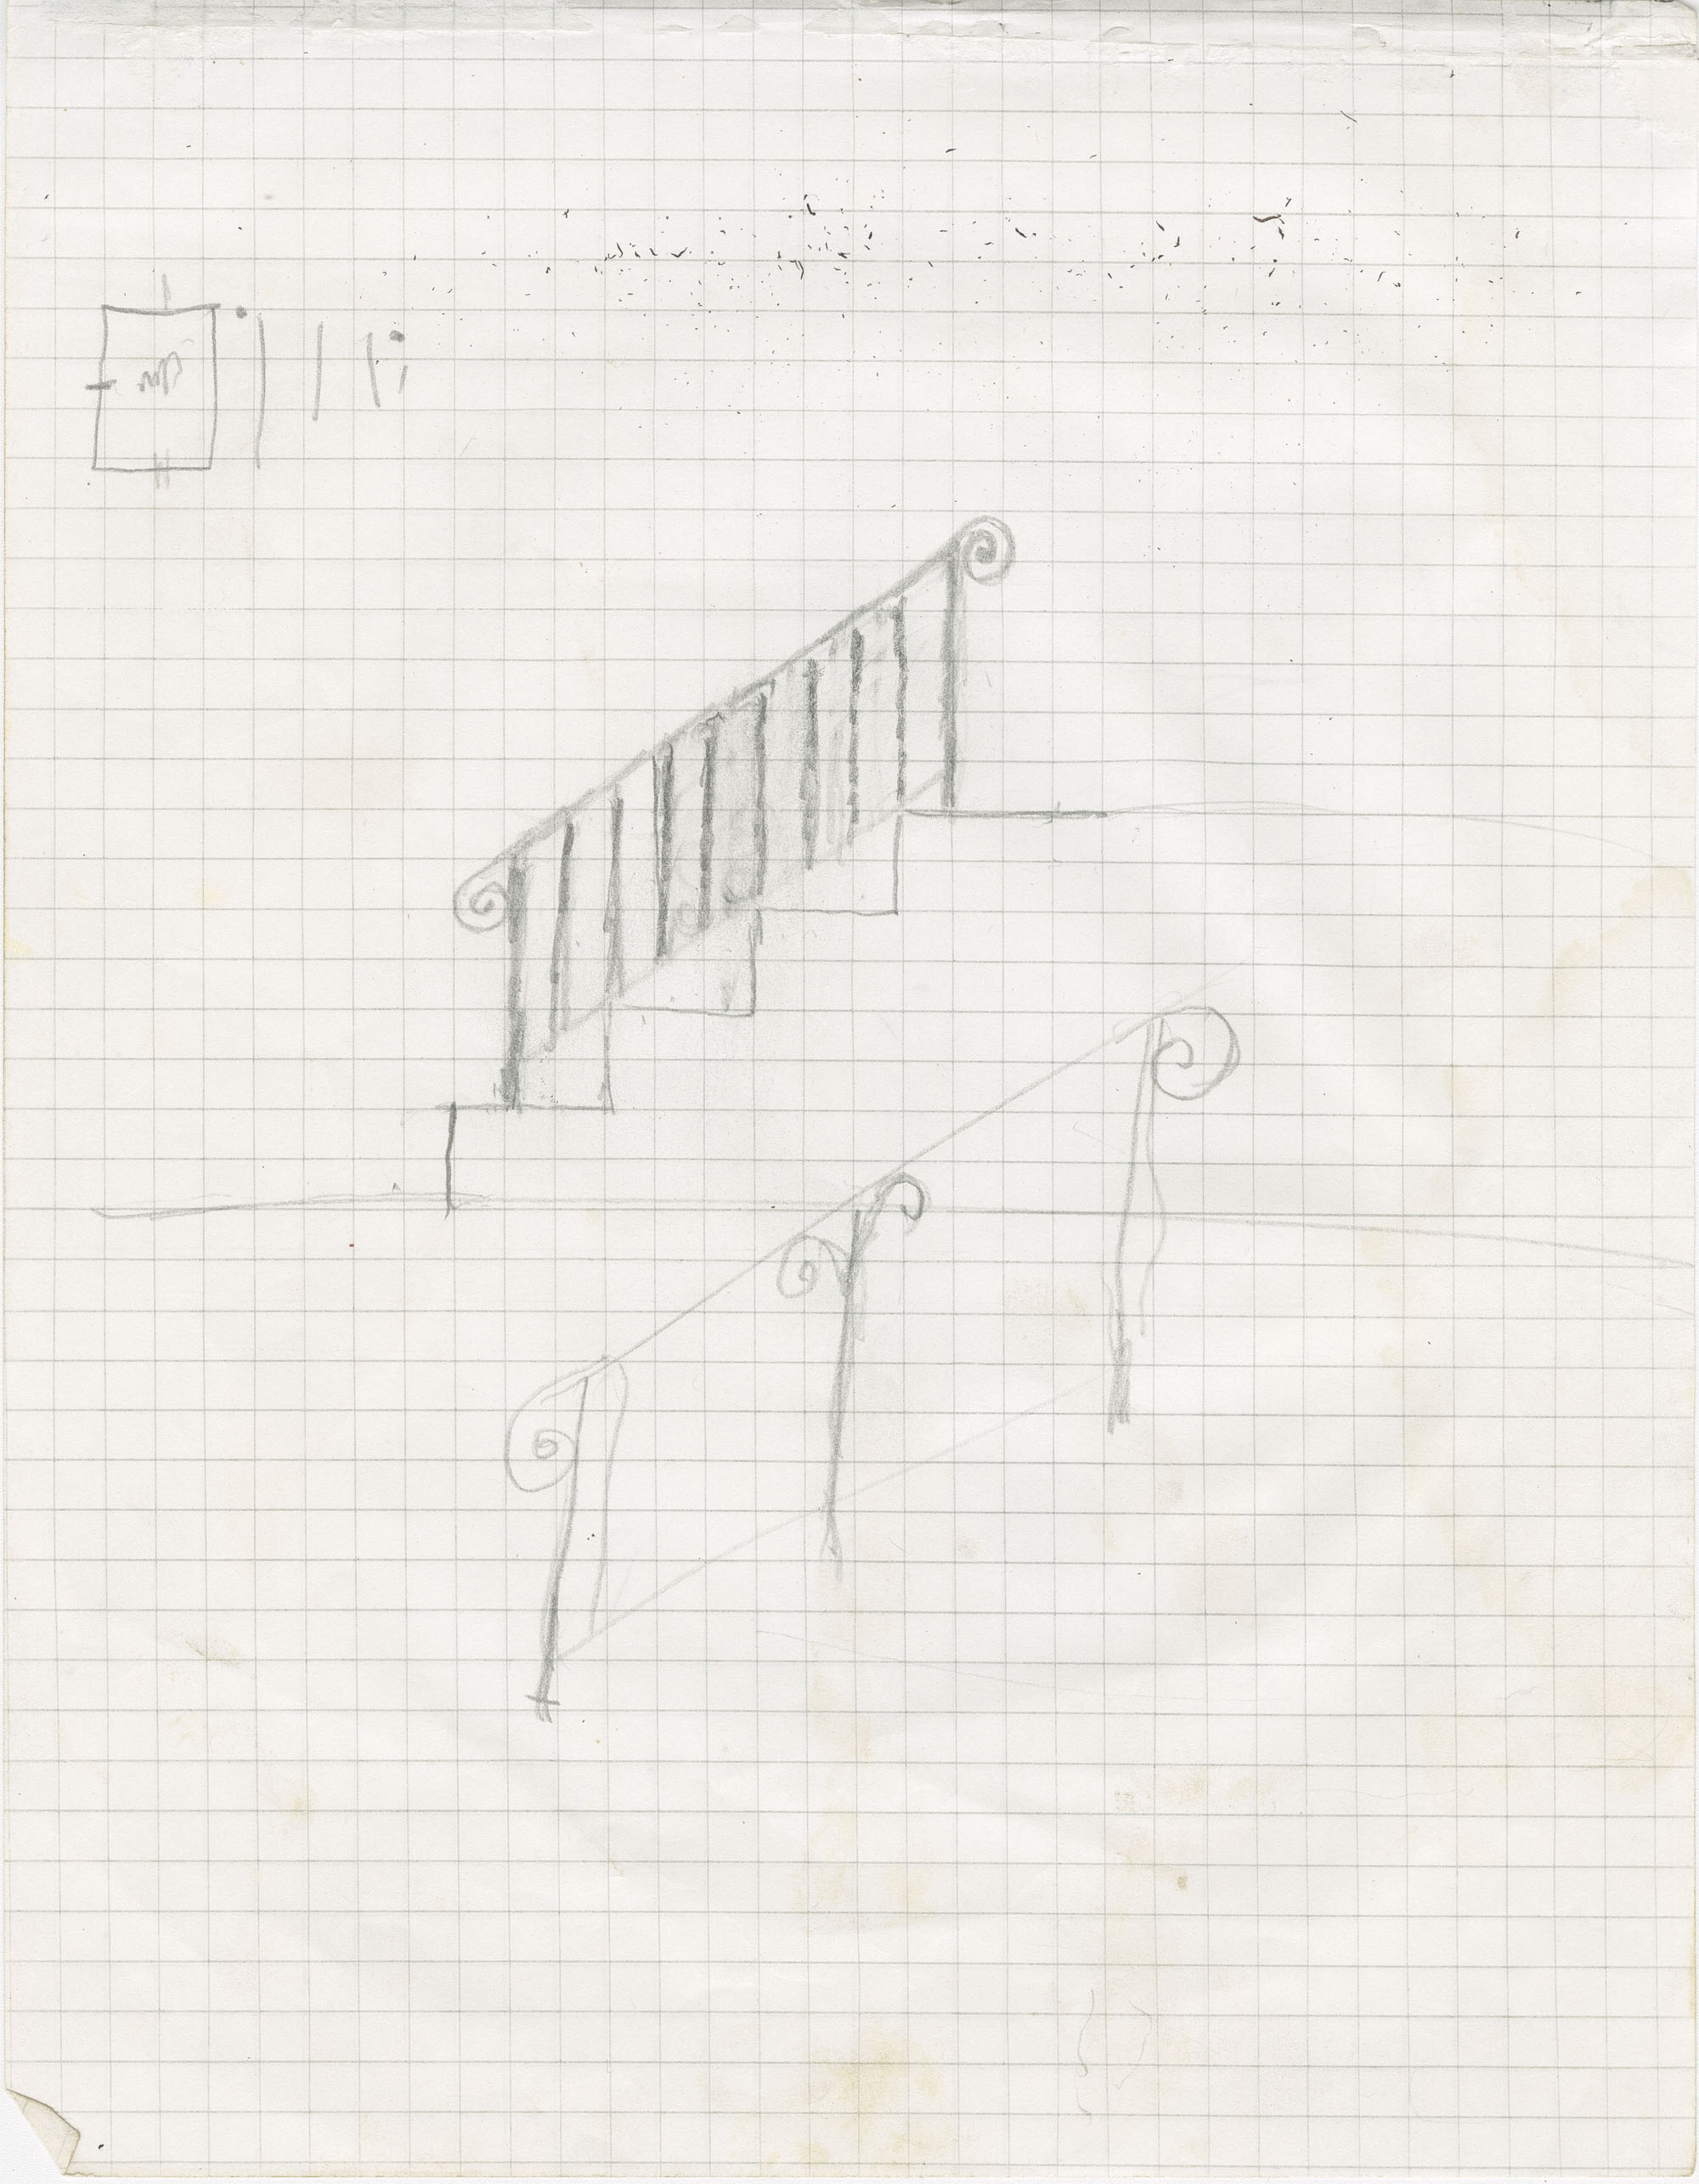 Unidentified stair rail with scrolls on both ends